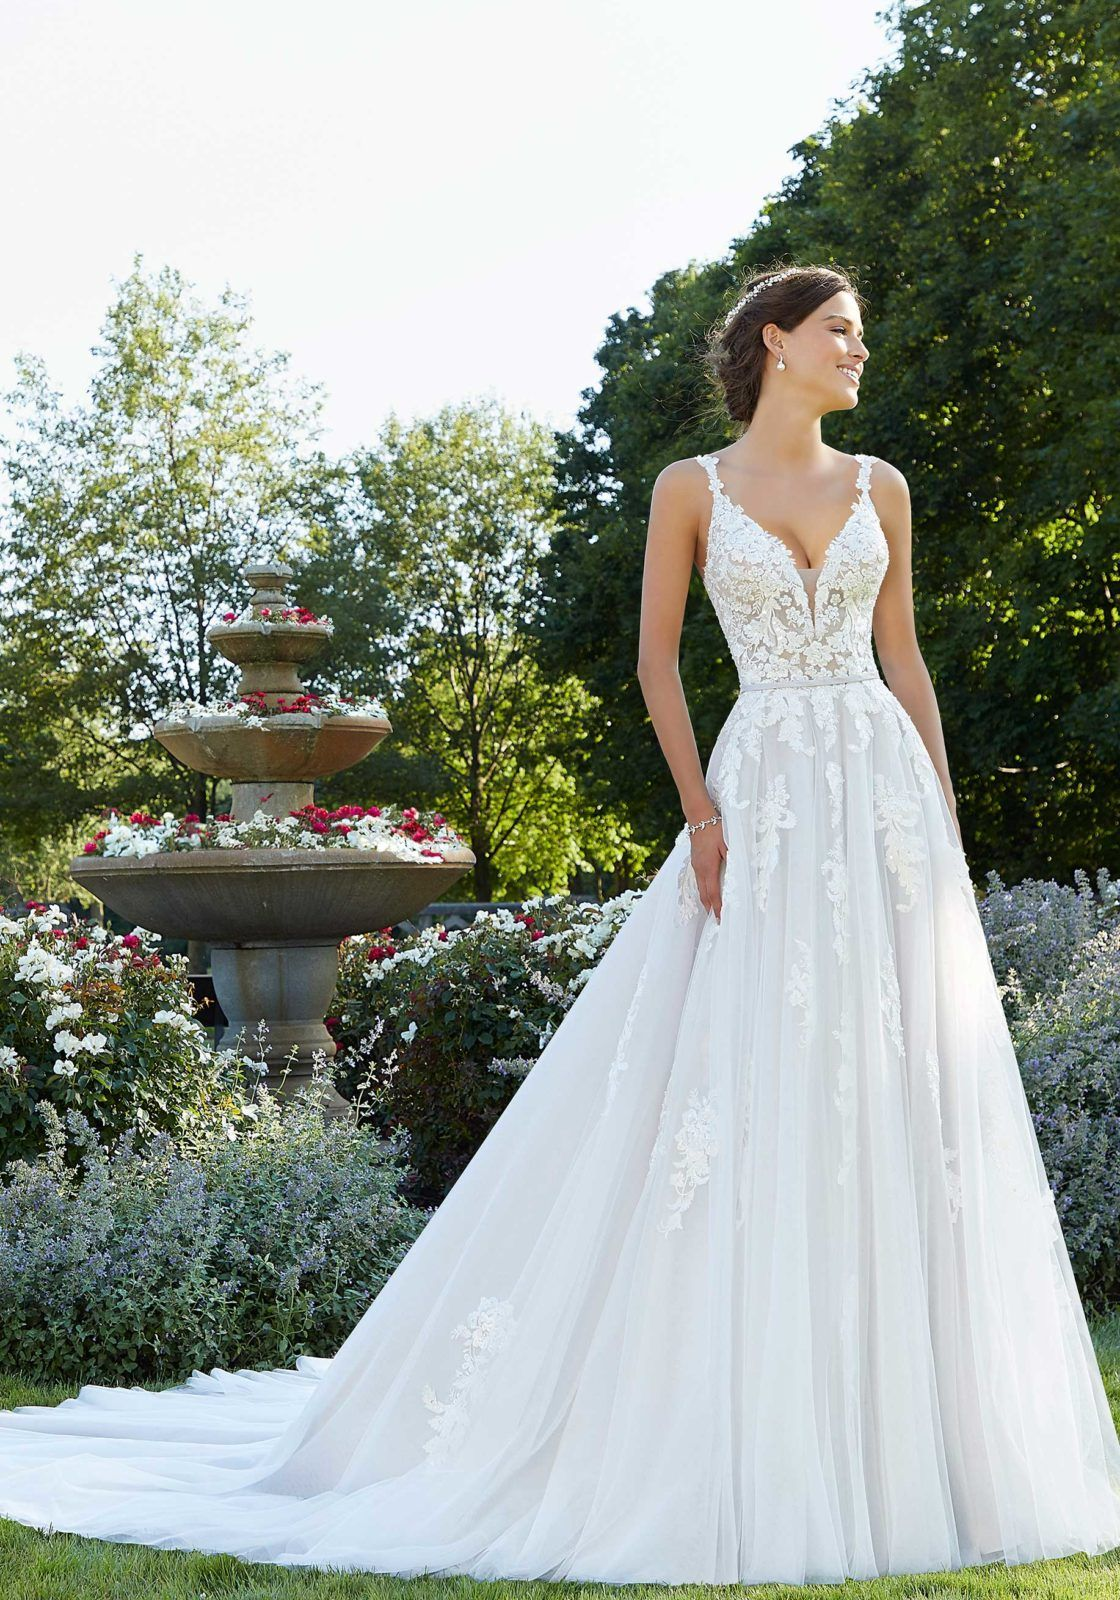 Sparrow Wedding Dress Morilee In 2020 Ball Gowns Wedding Wedding Dress Styles A Line Wedding Dress